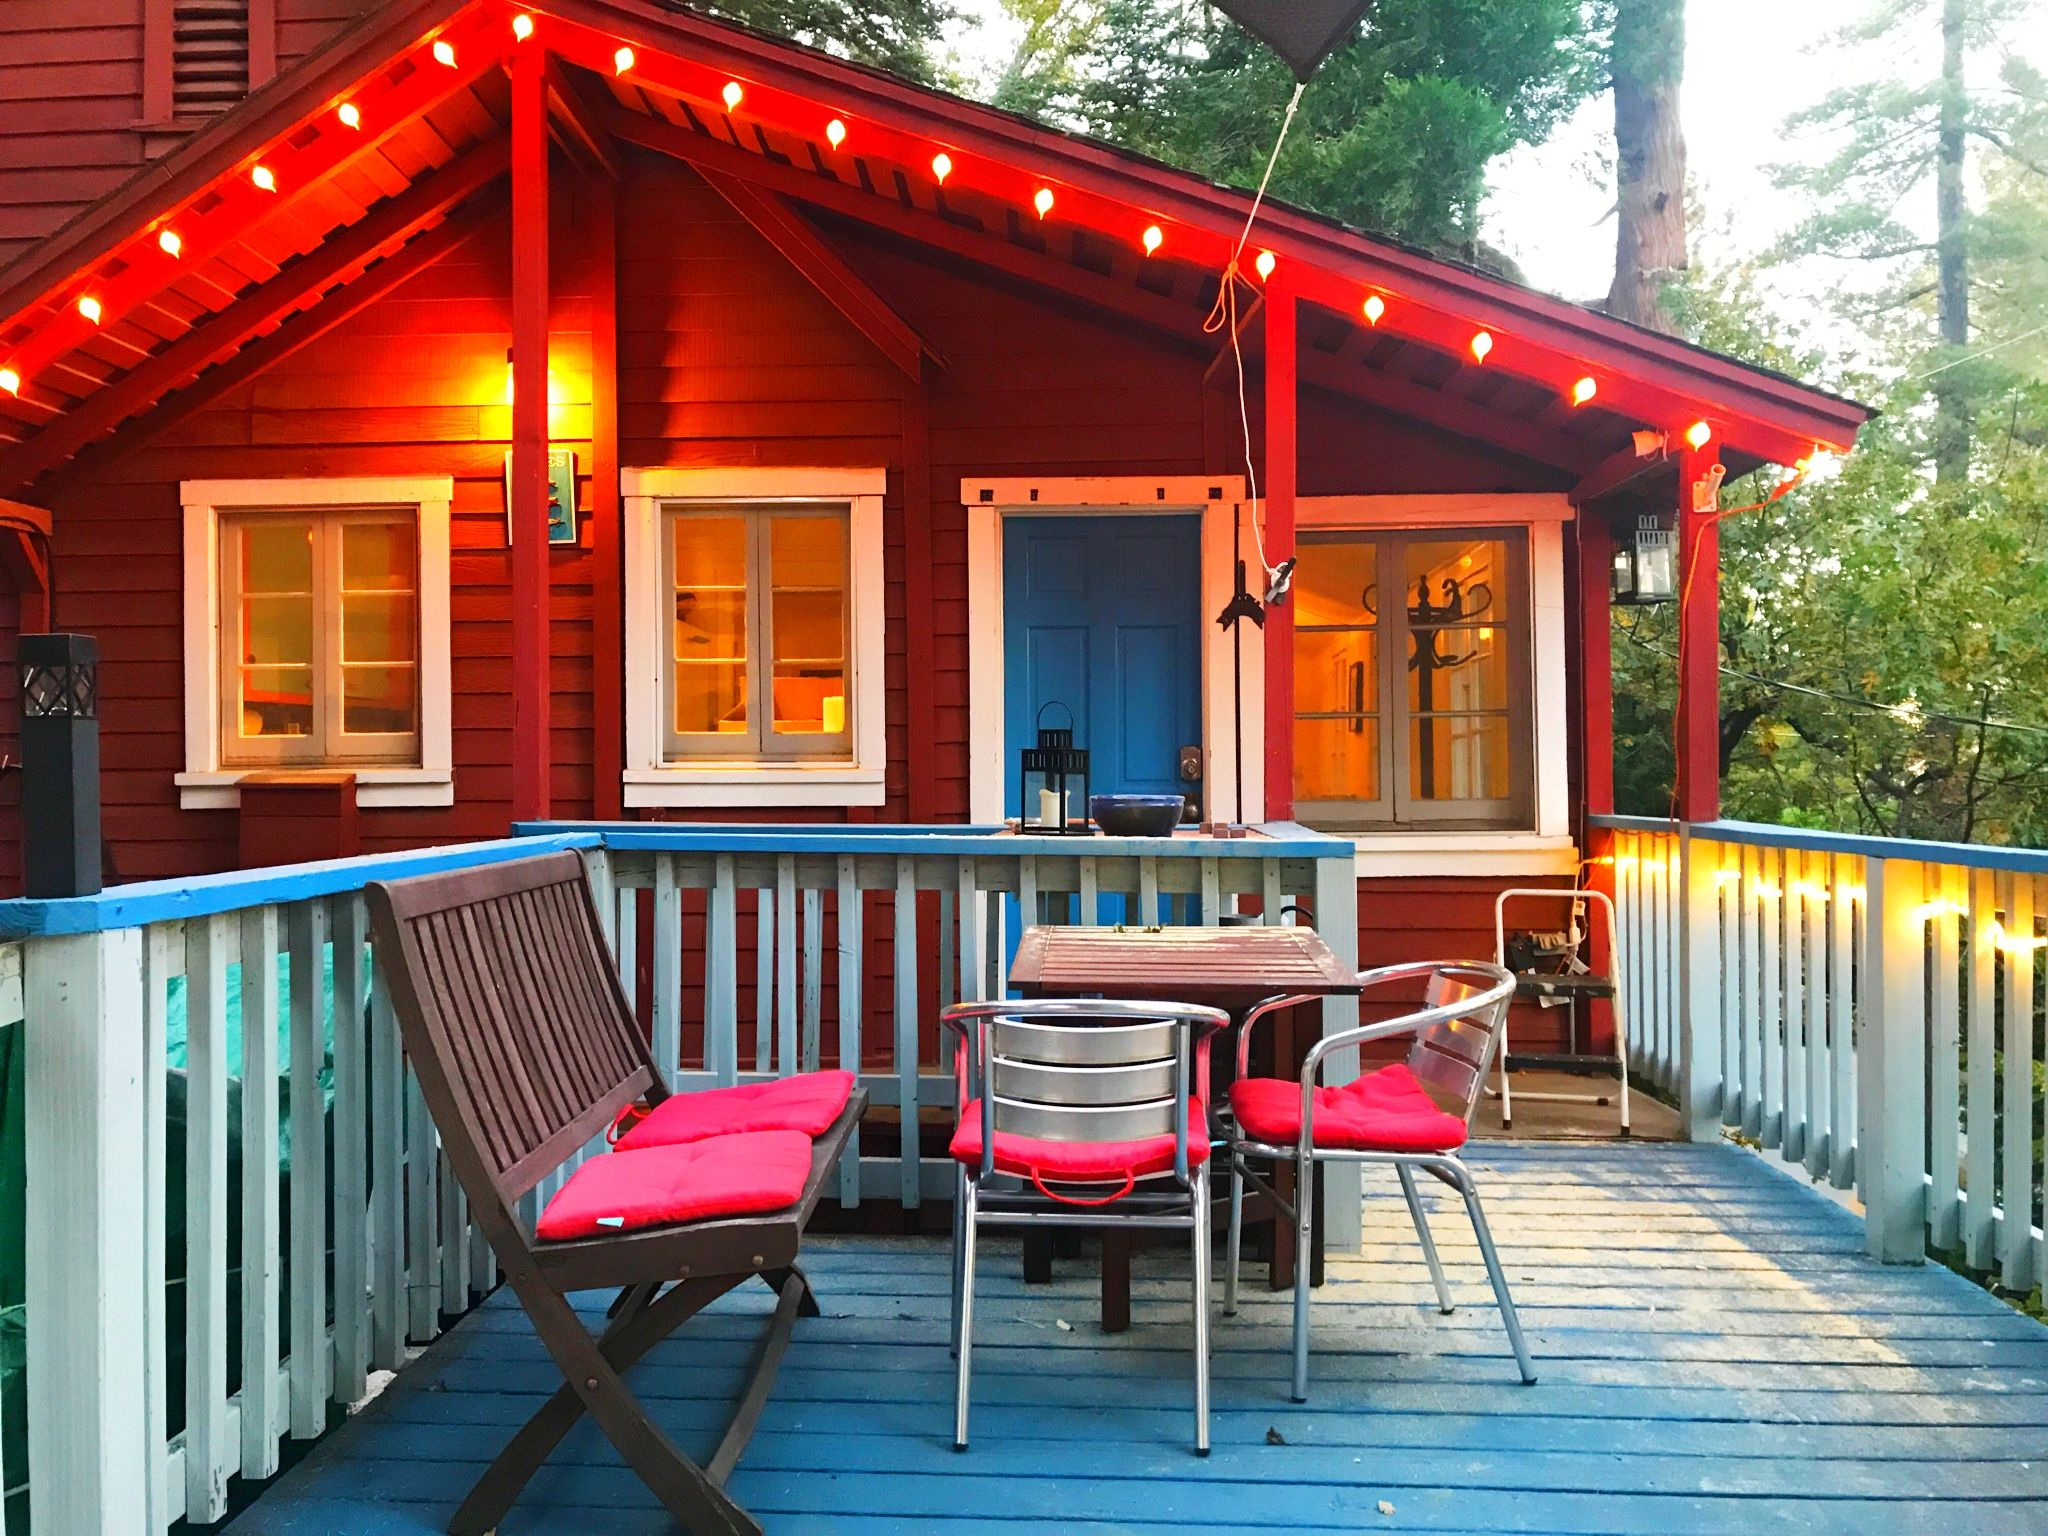 vacancy camp december at cabin fall roofed blog cabins accommodation highlights arrowhead parksblog in parks